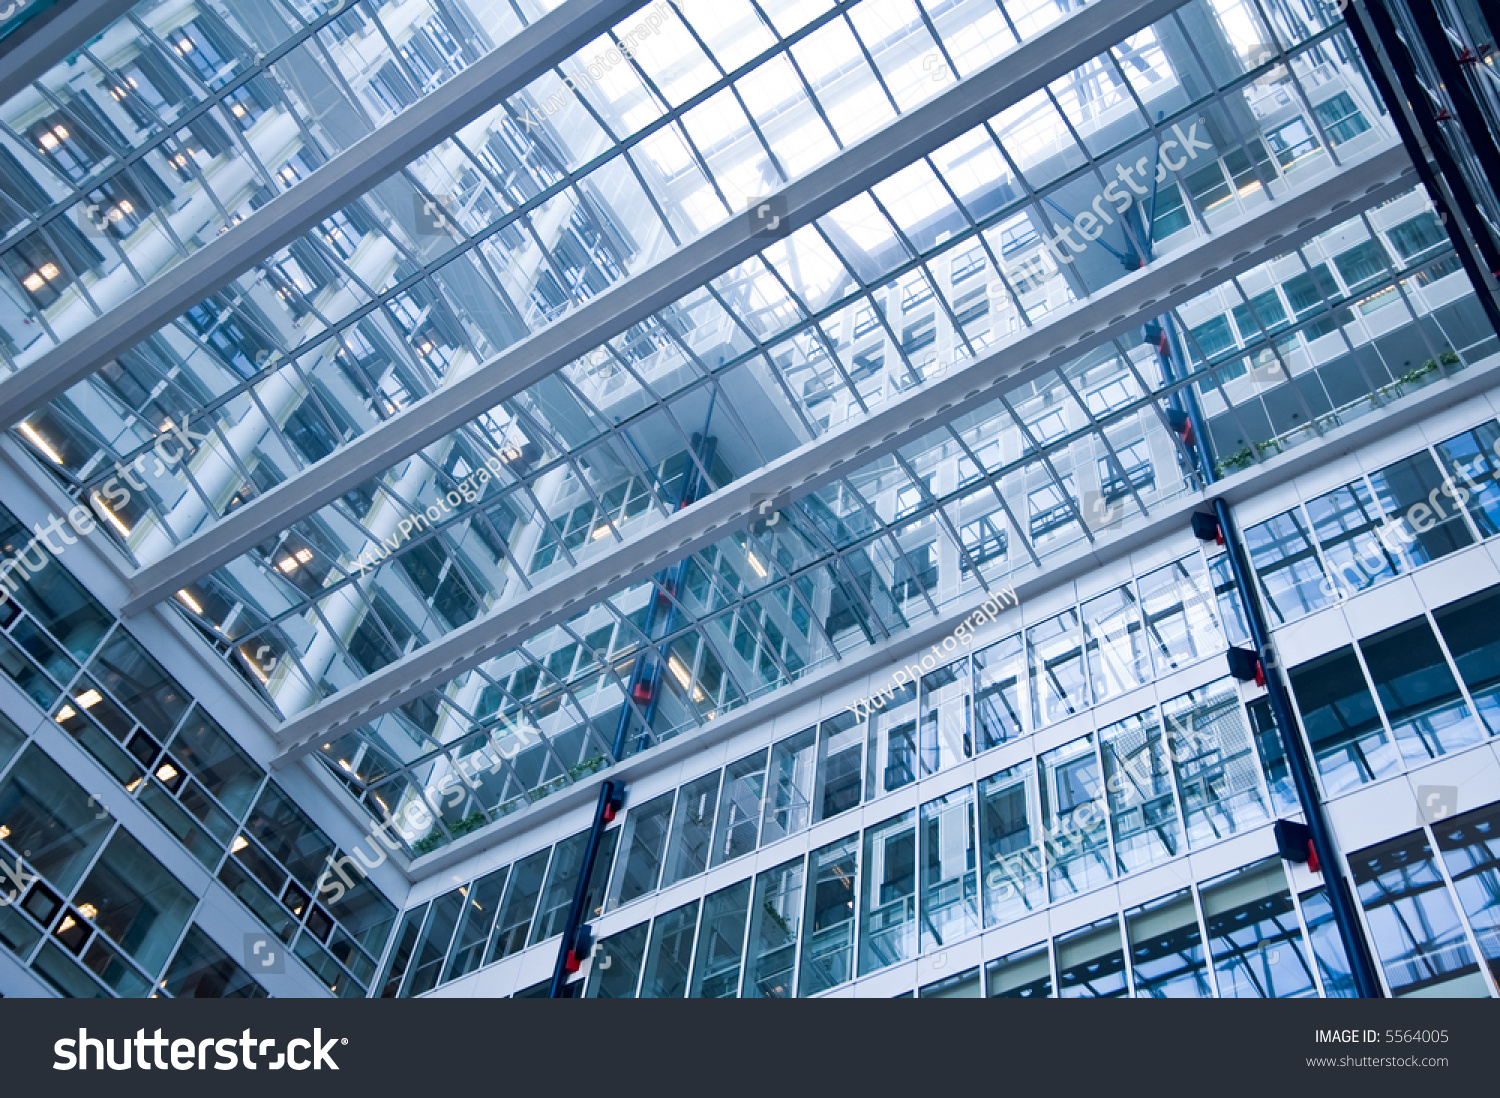 Glass Building Interior : Glass roof building interior stock photo